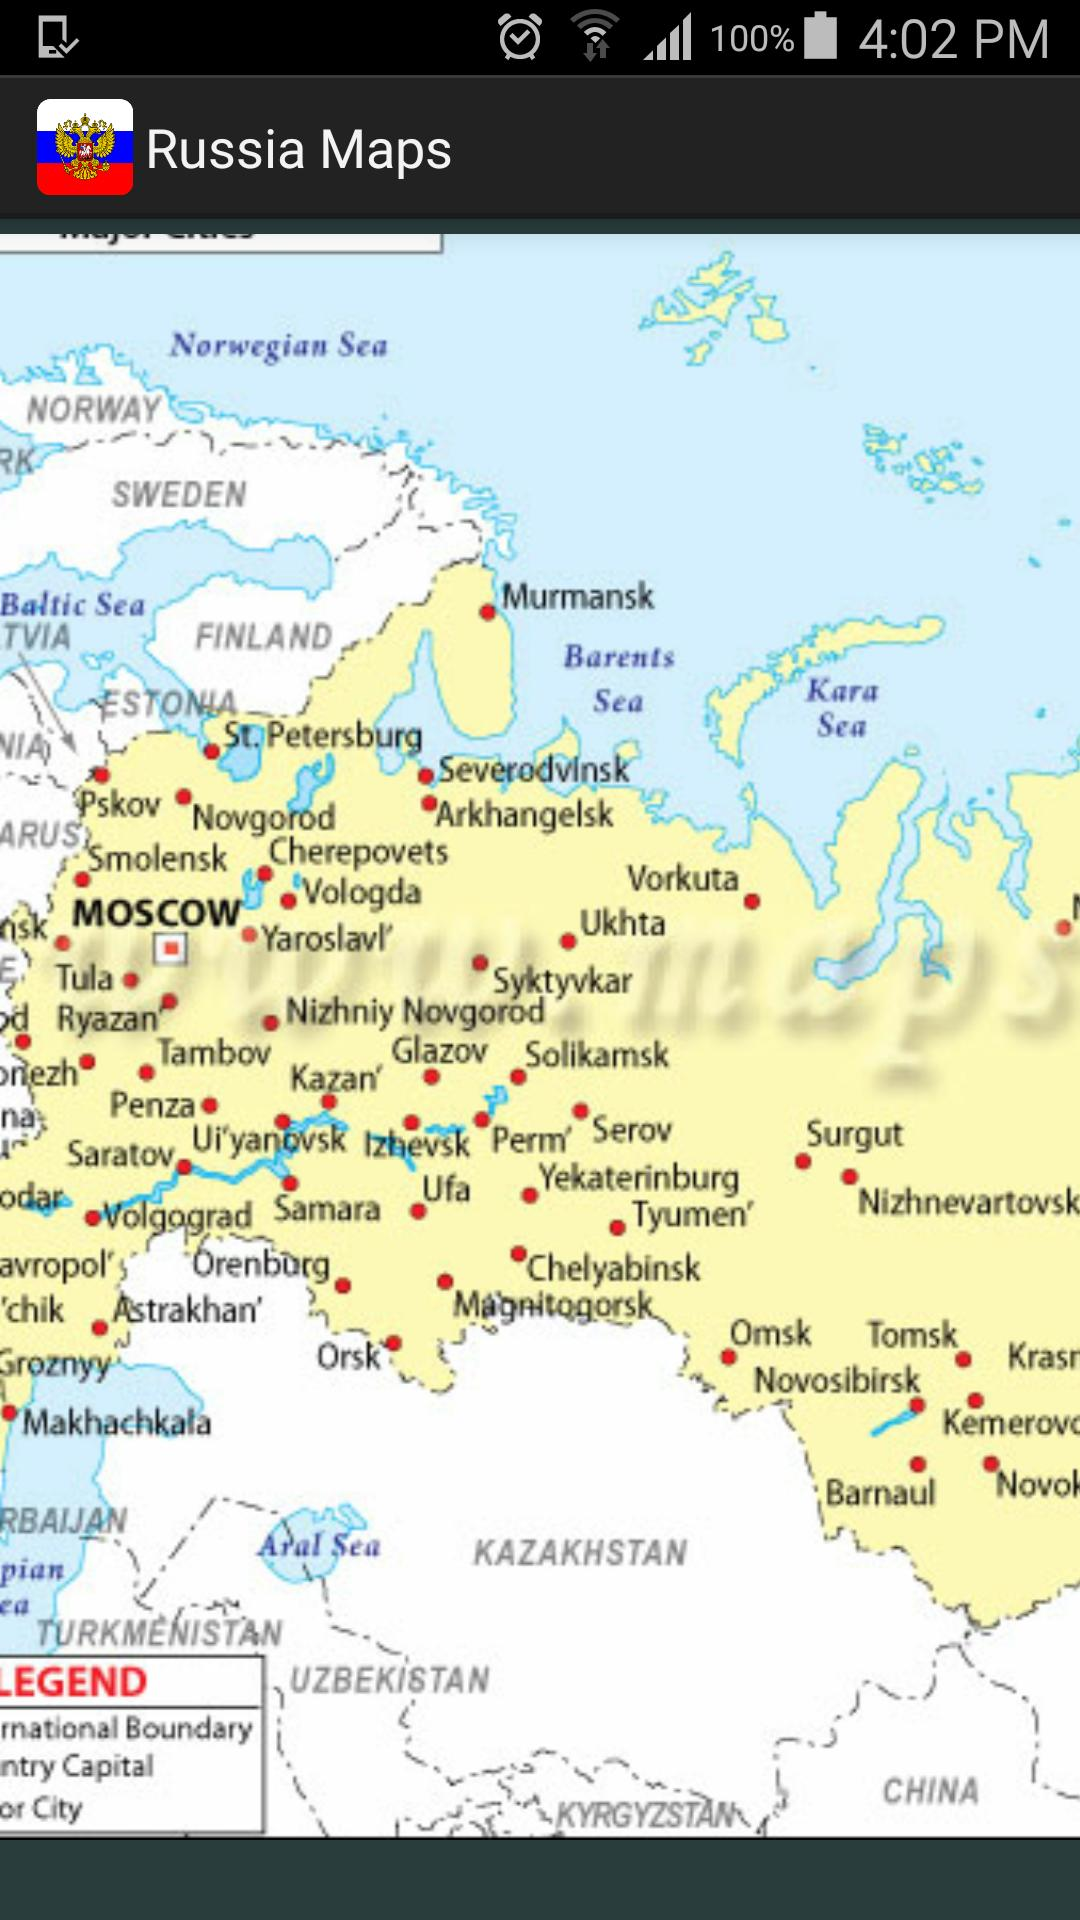 Russia Map Cities,Roads,Rivers for Android - APK Download on vilnius russia map, nyagan russia map, yuzhno russia map, novgorod russia map, jewish autonomous oblast russia map, khakassia russia map, sakha russia map, komsomolsk russia map, stavropol russia map, severomorsk russia map, krasnogorsk russia map, simferopol russia map, altai krai russia map, kalmykia russia map, tuva russia map, kirovsk russia map, volsk russia map, zagorsk russia map,